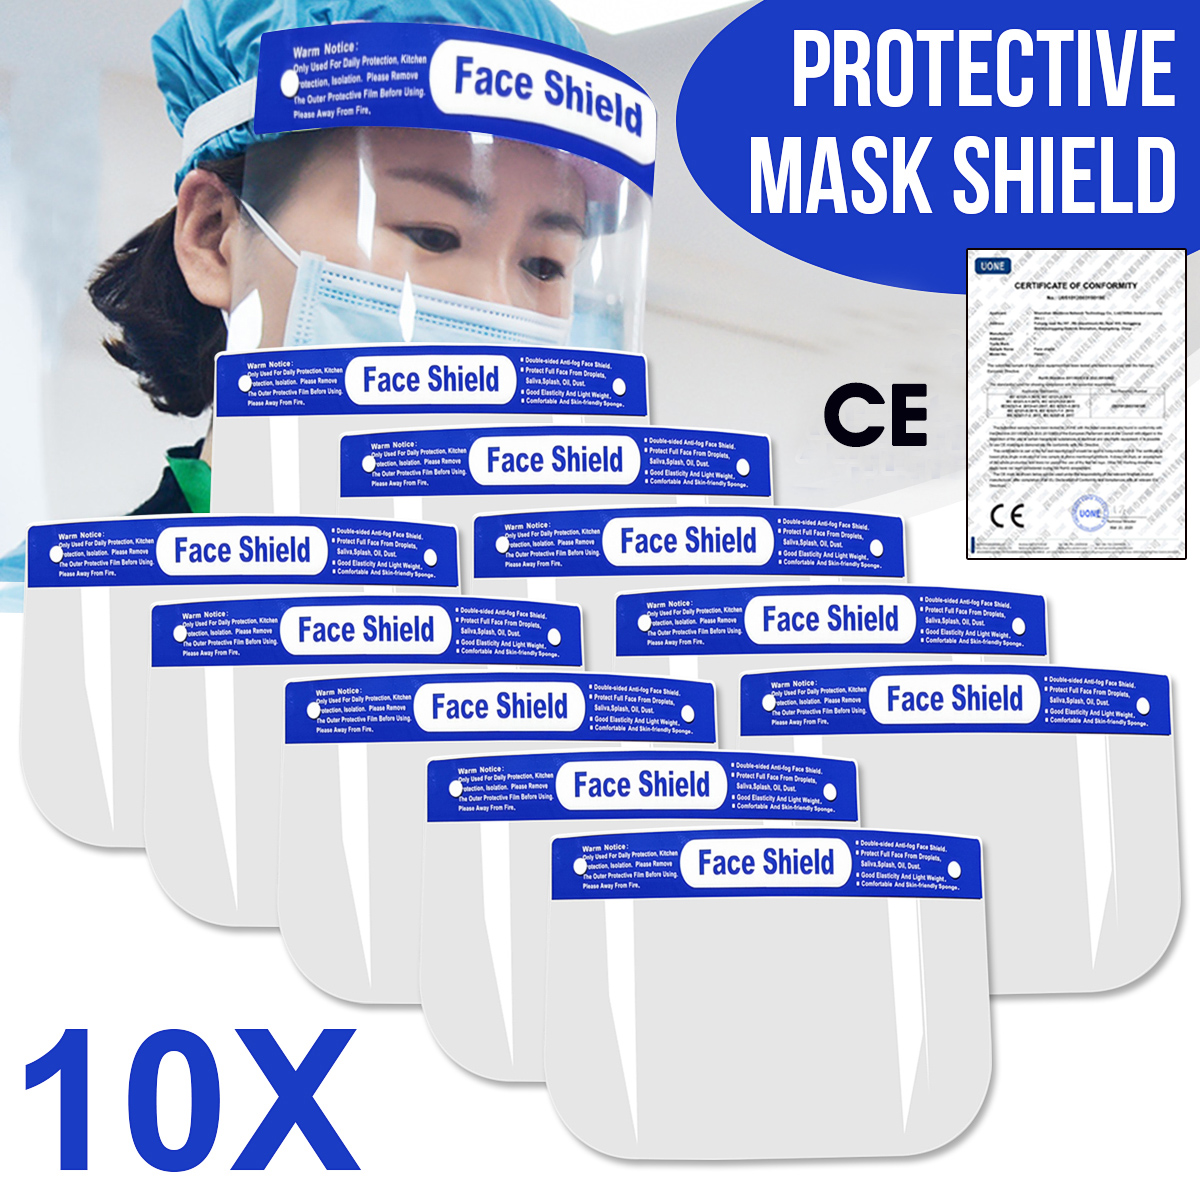 5/8/10/16/20pcs Protection Face Hat Helmet Virus Prevention Respirator Shield Spittle Safety Masks Work With Face Mouth Mask